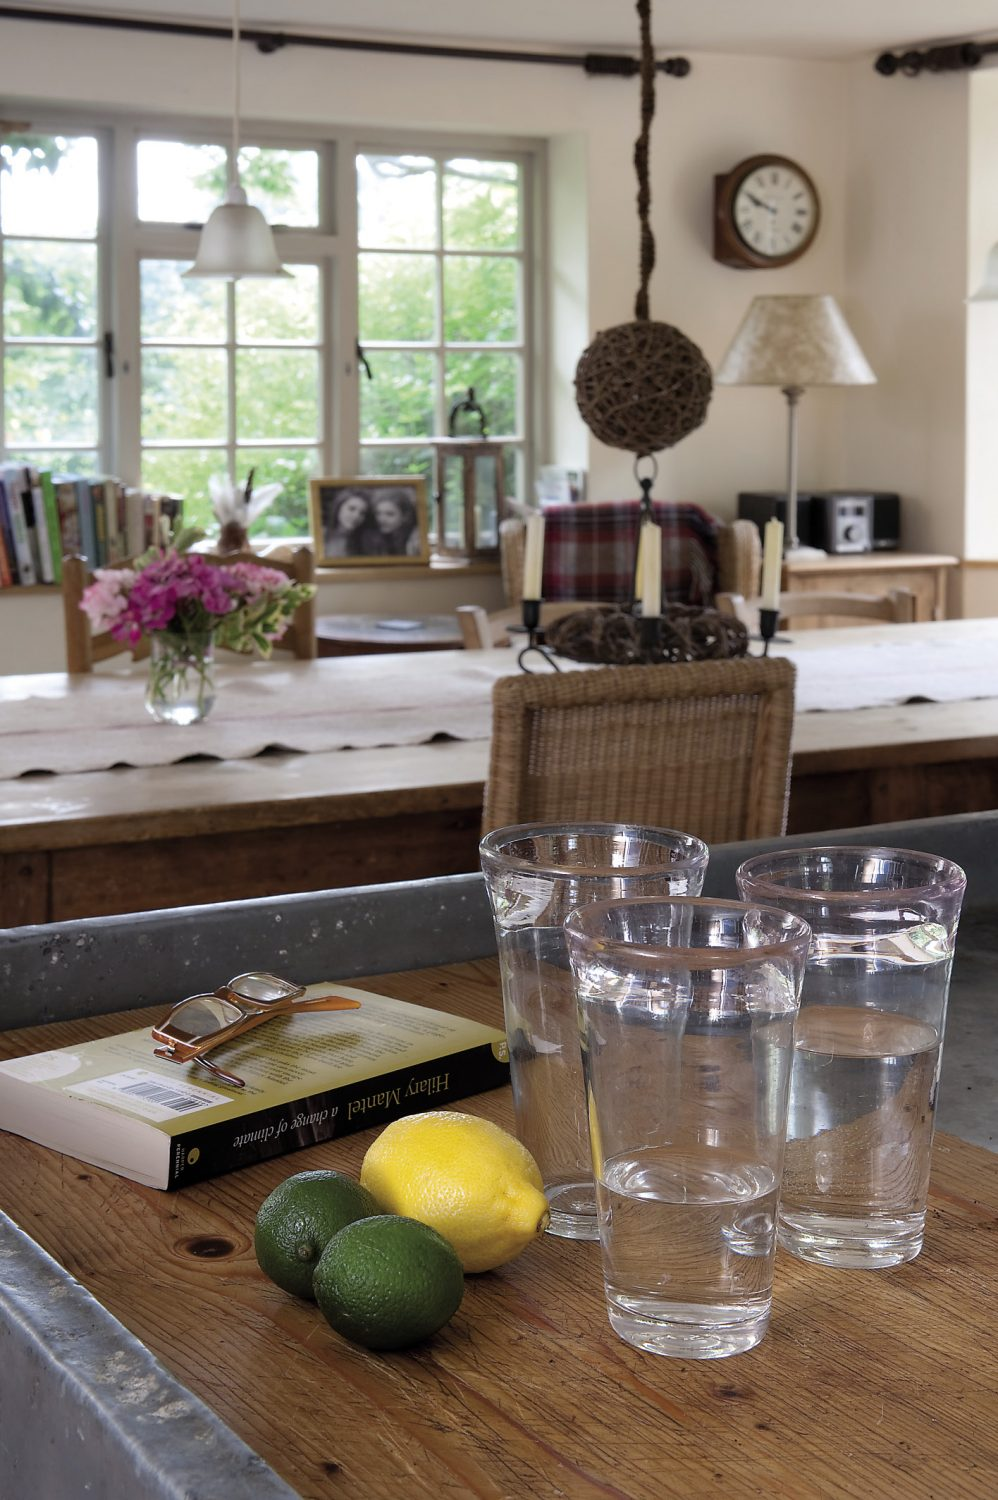 The kitchen has a traditional feel. An old French zinc-topped garden potting table makes a superb six-foot preparation table and a distressed French cupboard stands nearby